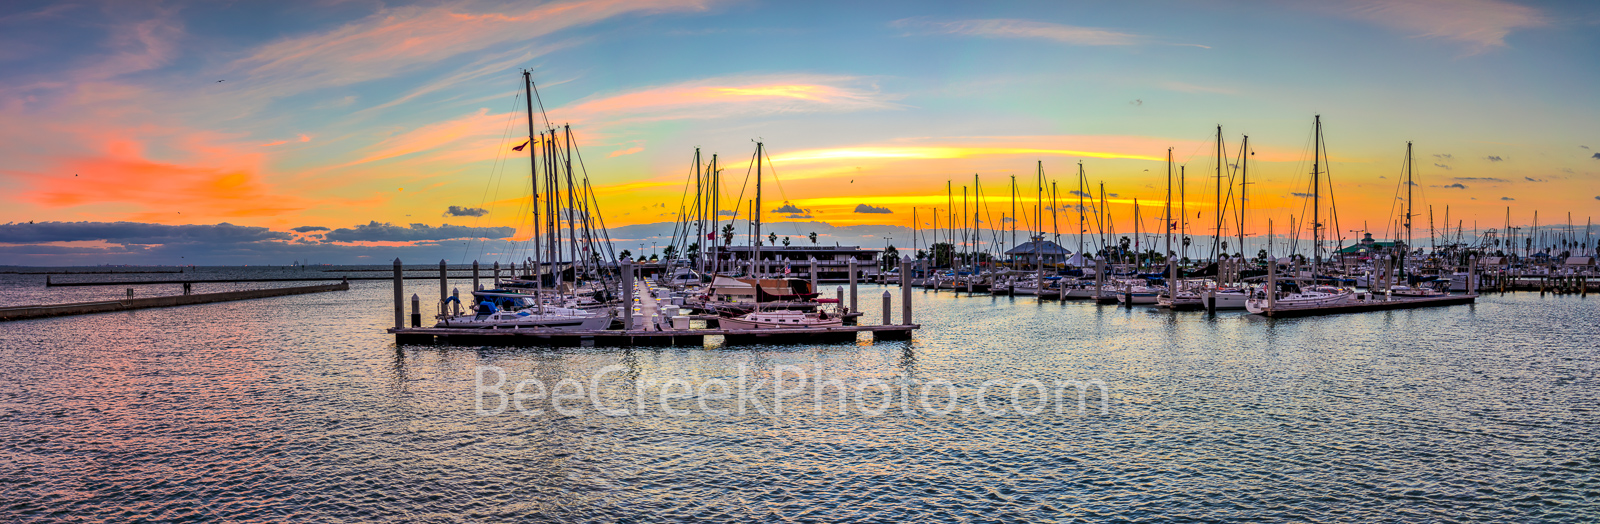 Corpus Christi Marina Sunrise Pano  -  Corpus Christi at sunrise over a marina with the colorful sky in the background...